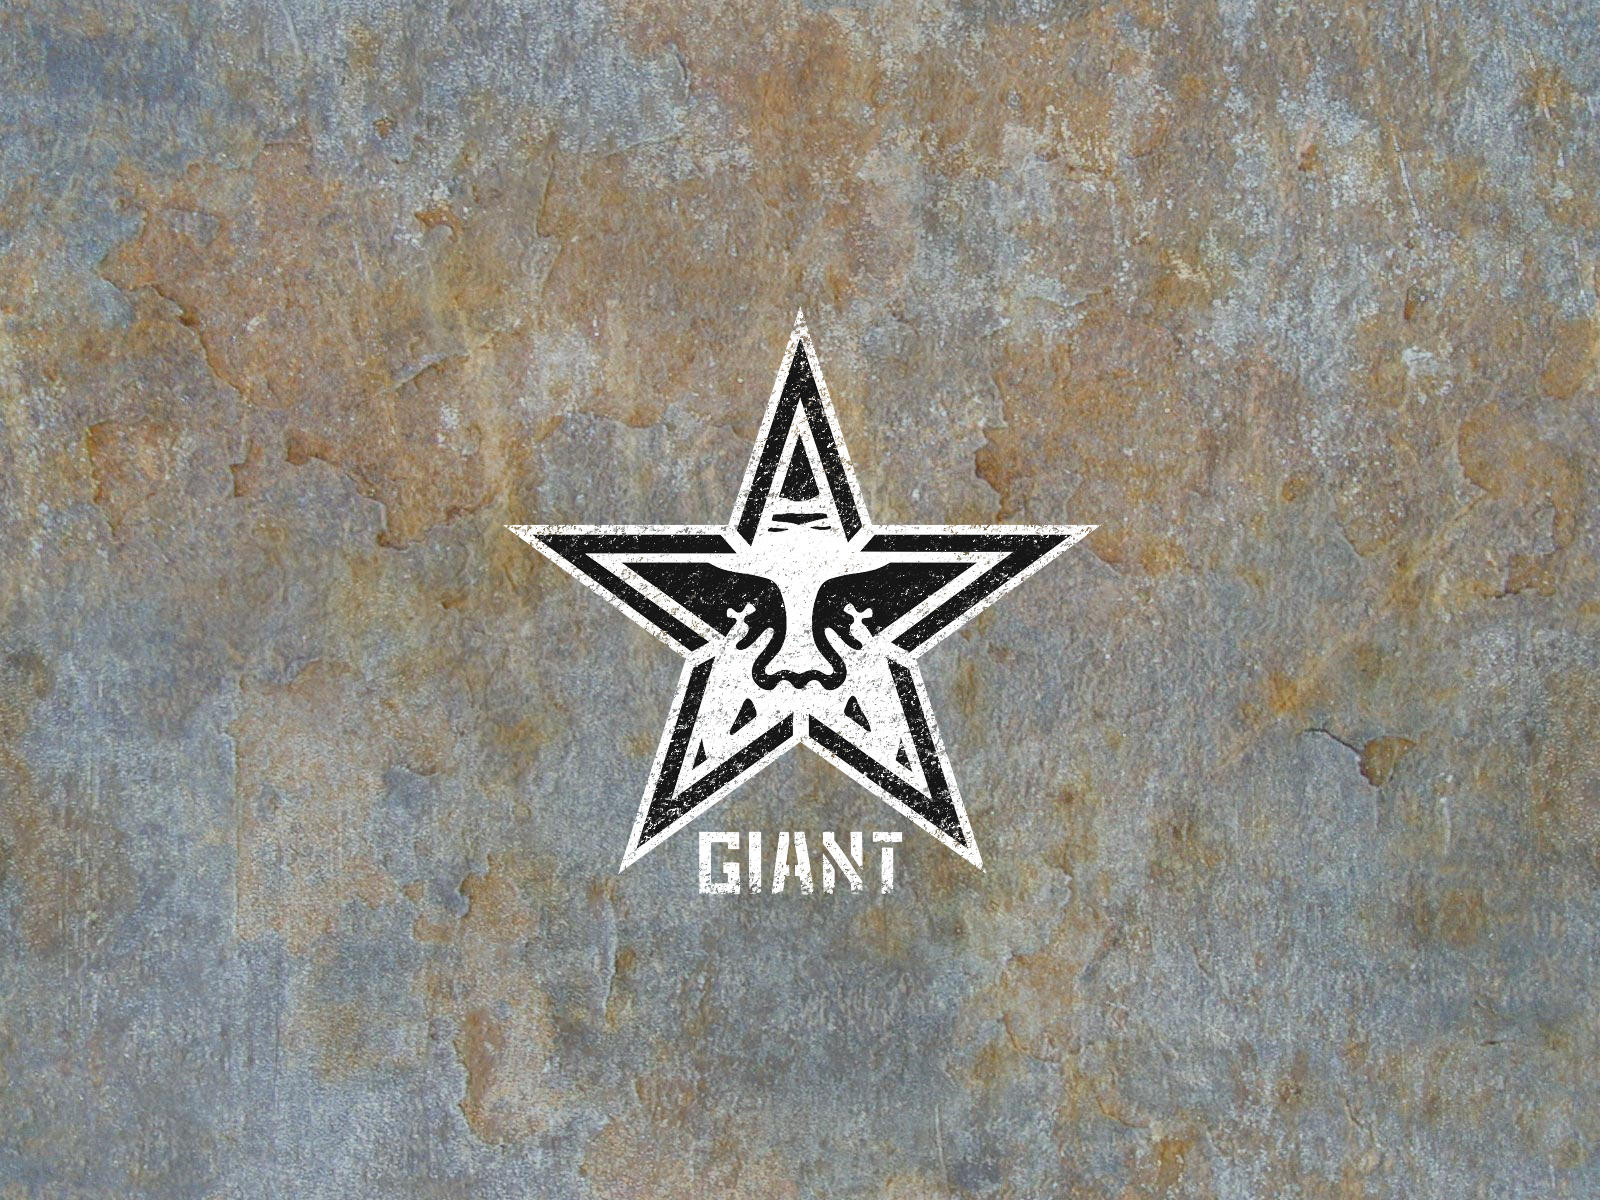 Obey Giant Wallpaper Hd Obey giant on a rusty wall by